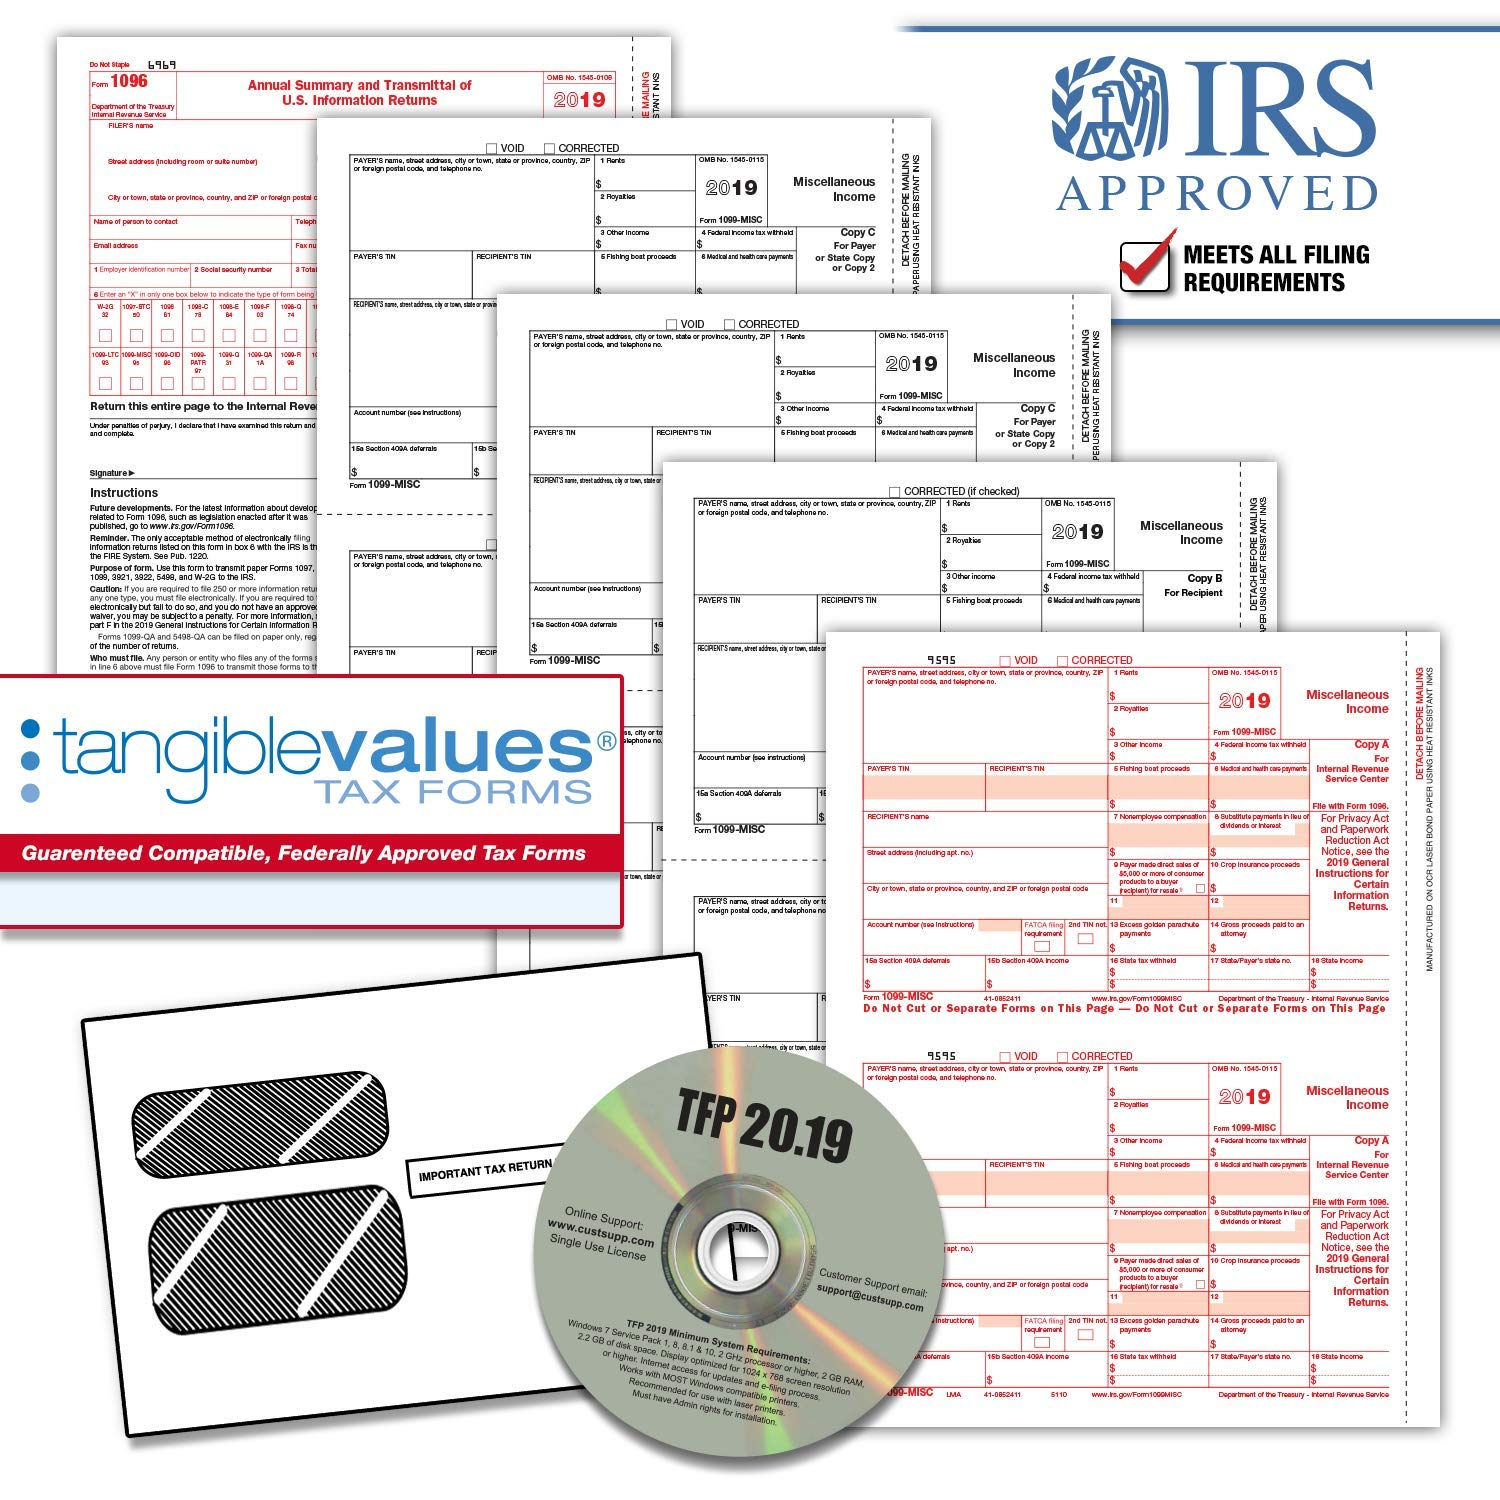 Tangible Values 1099 Misc Laser Forms (4-Part) Kit with Envelopes Plus TFP Software for 50 Individuals/Suppliers (2019) by Tangible Values Business Solutions